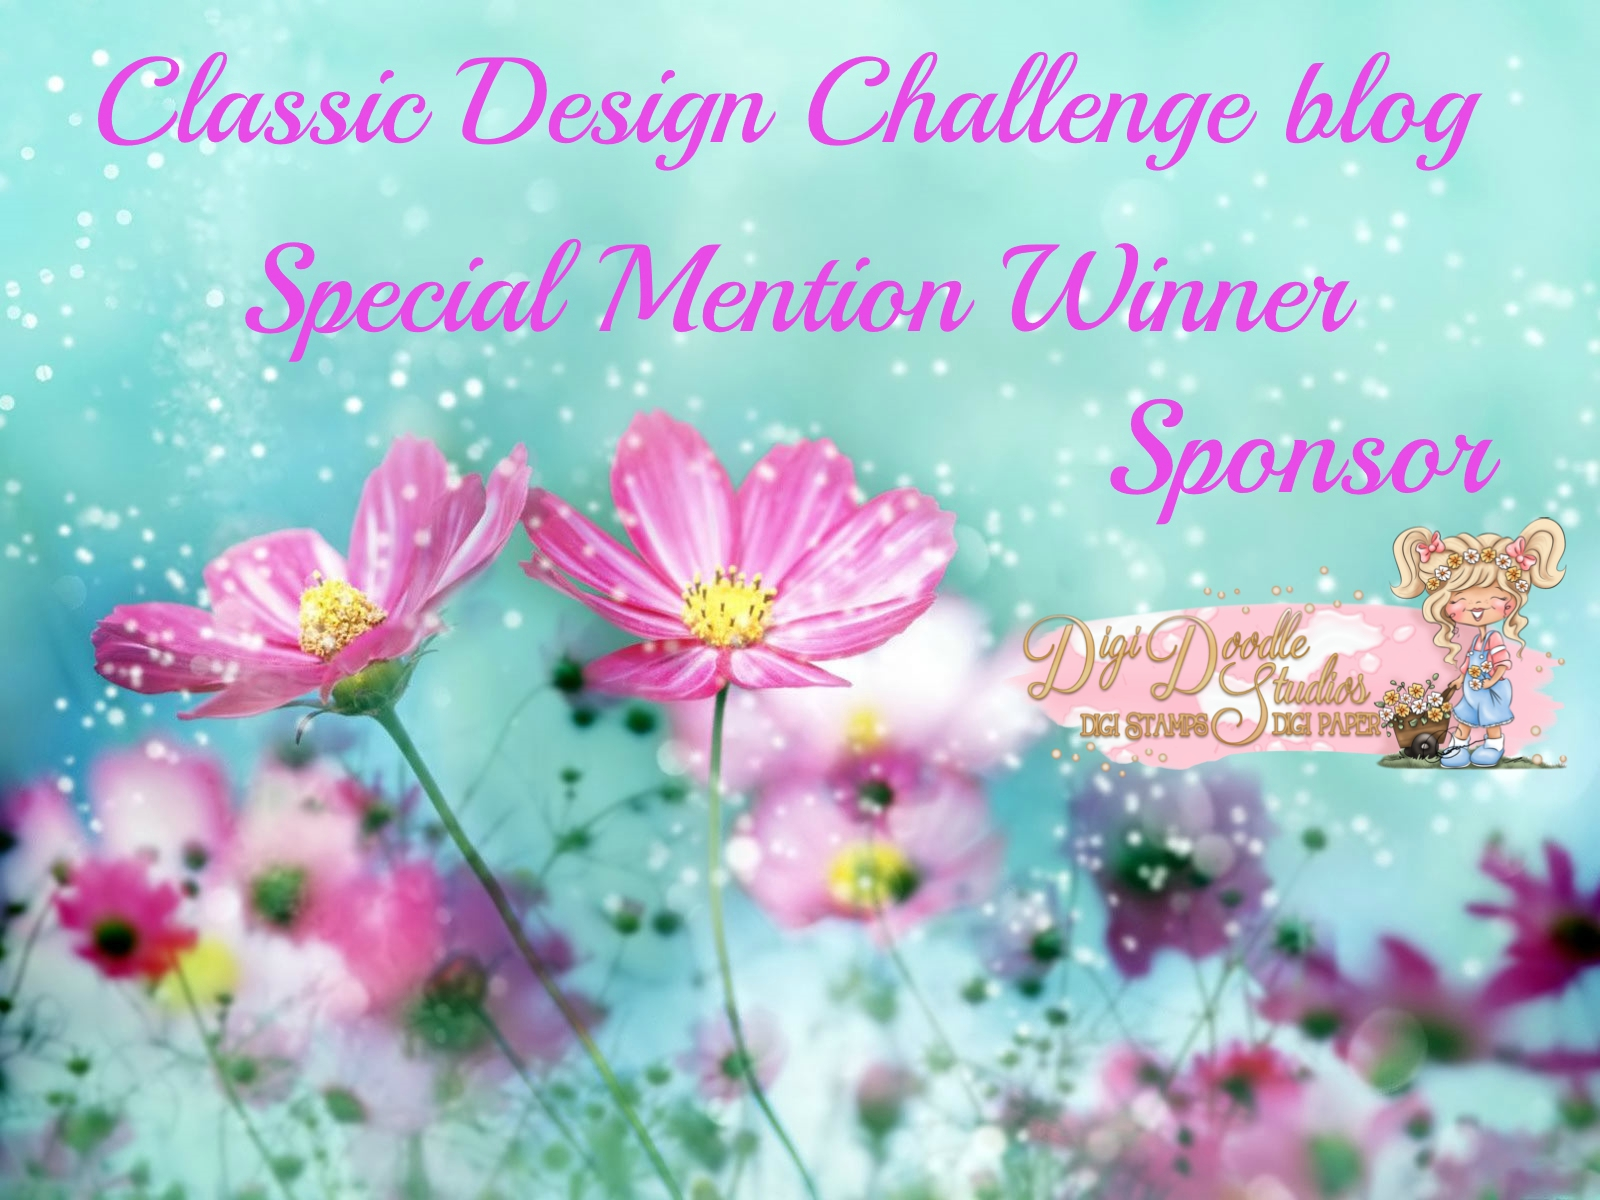 I Have a Special Mention at Classic Design Challenge